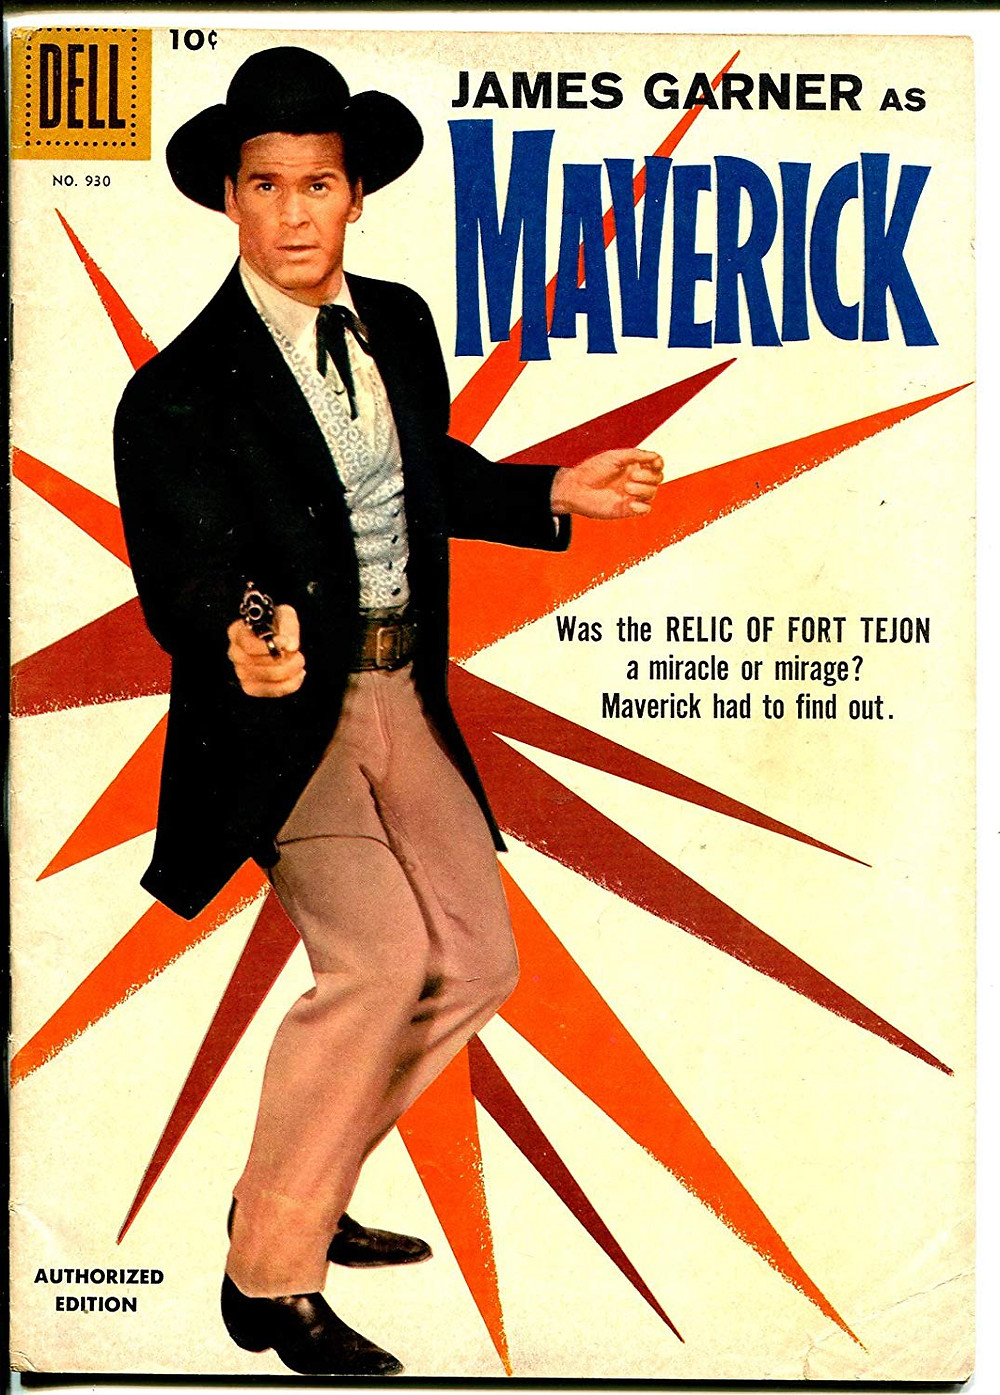 1958 Maverick comic book draw by Dan Spiegle and published by Dell featuring James Garner as Maverick